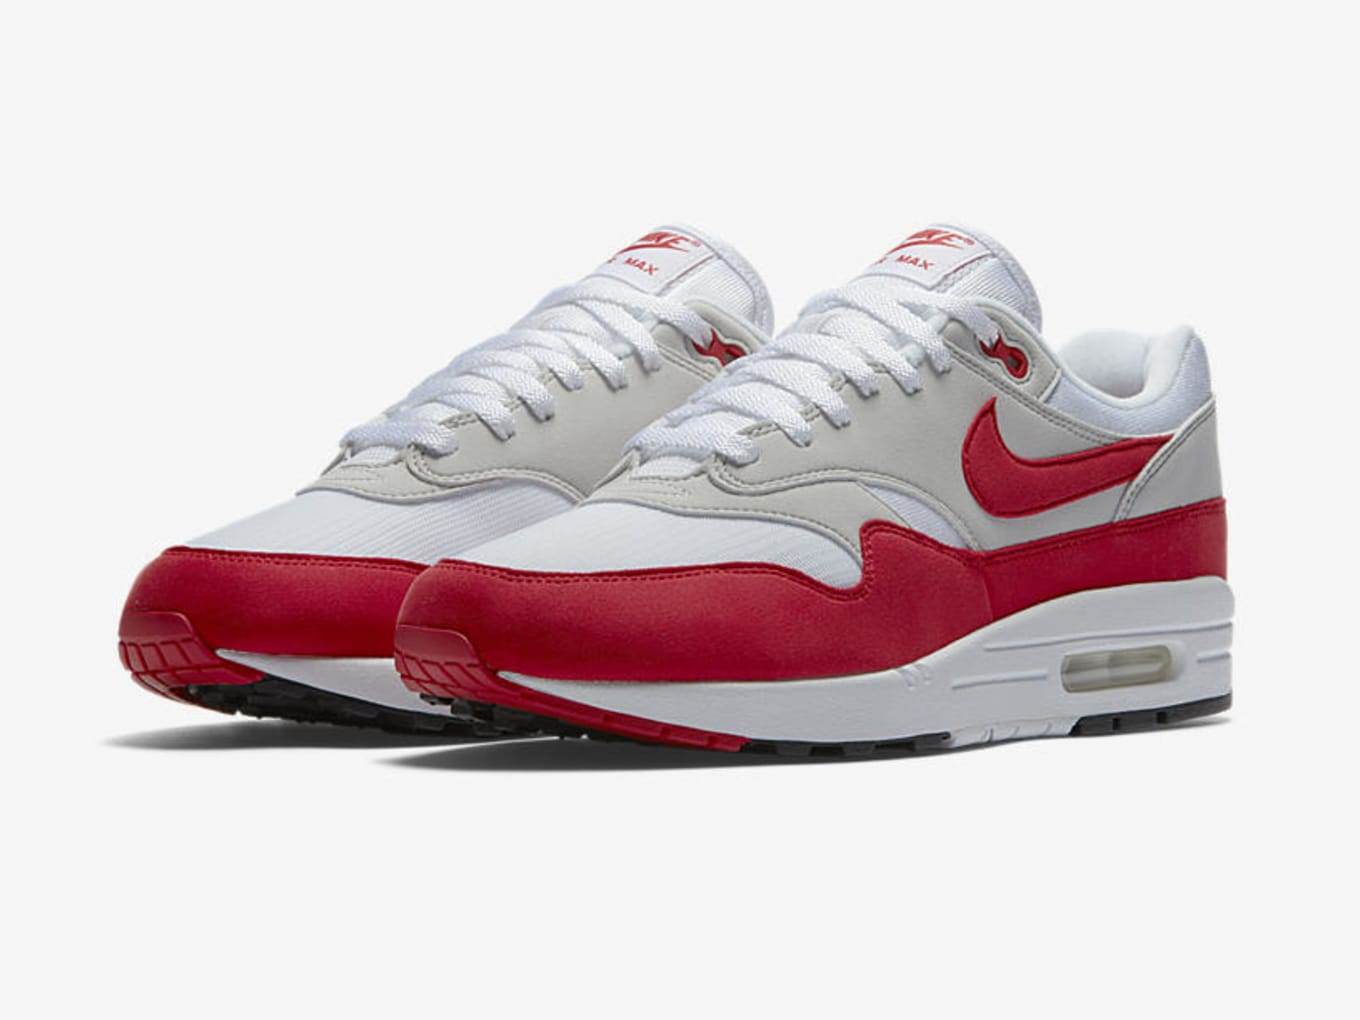 Nike Air Max 1 OG 'Red' Is Re-releasing   Sole Collector